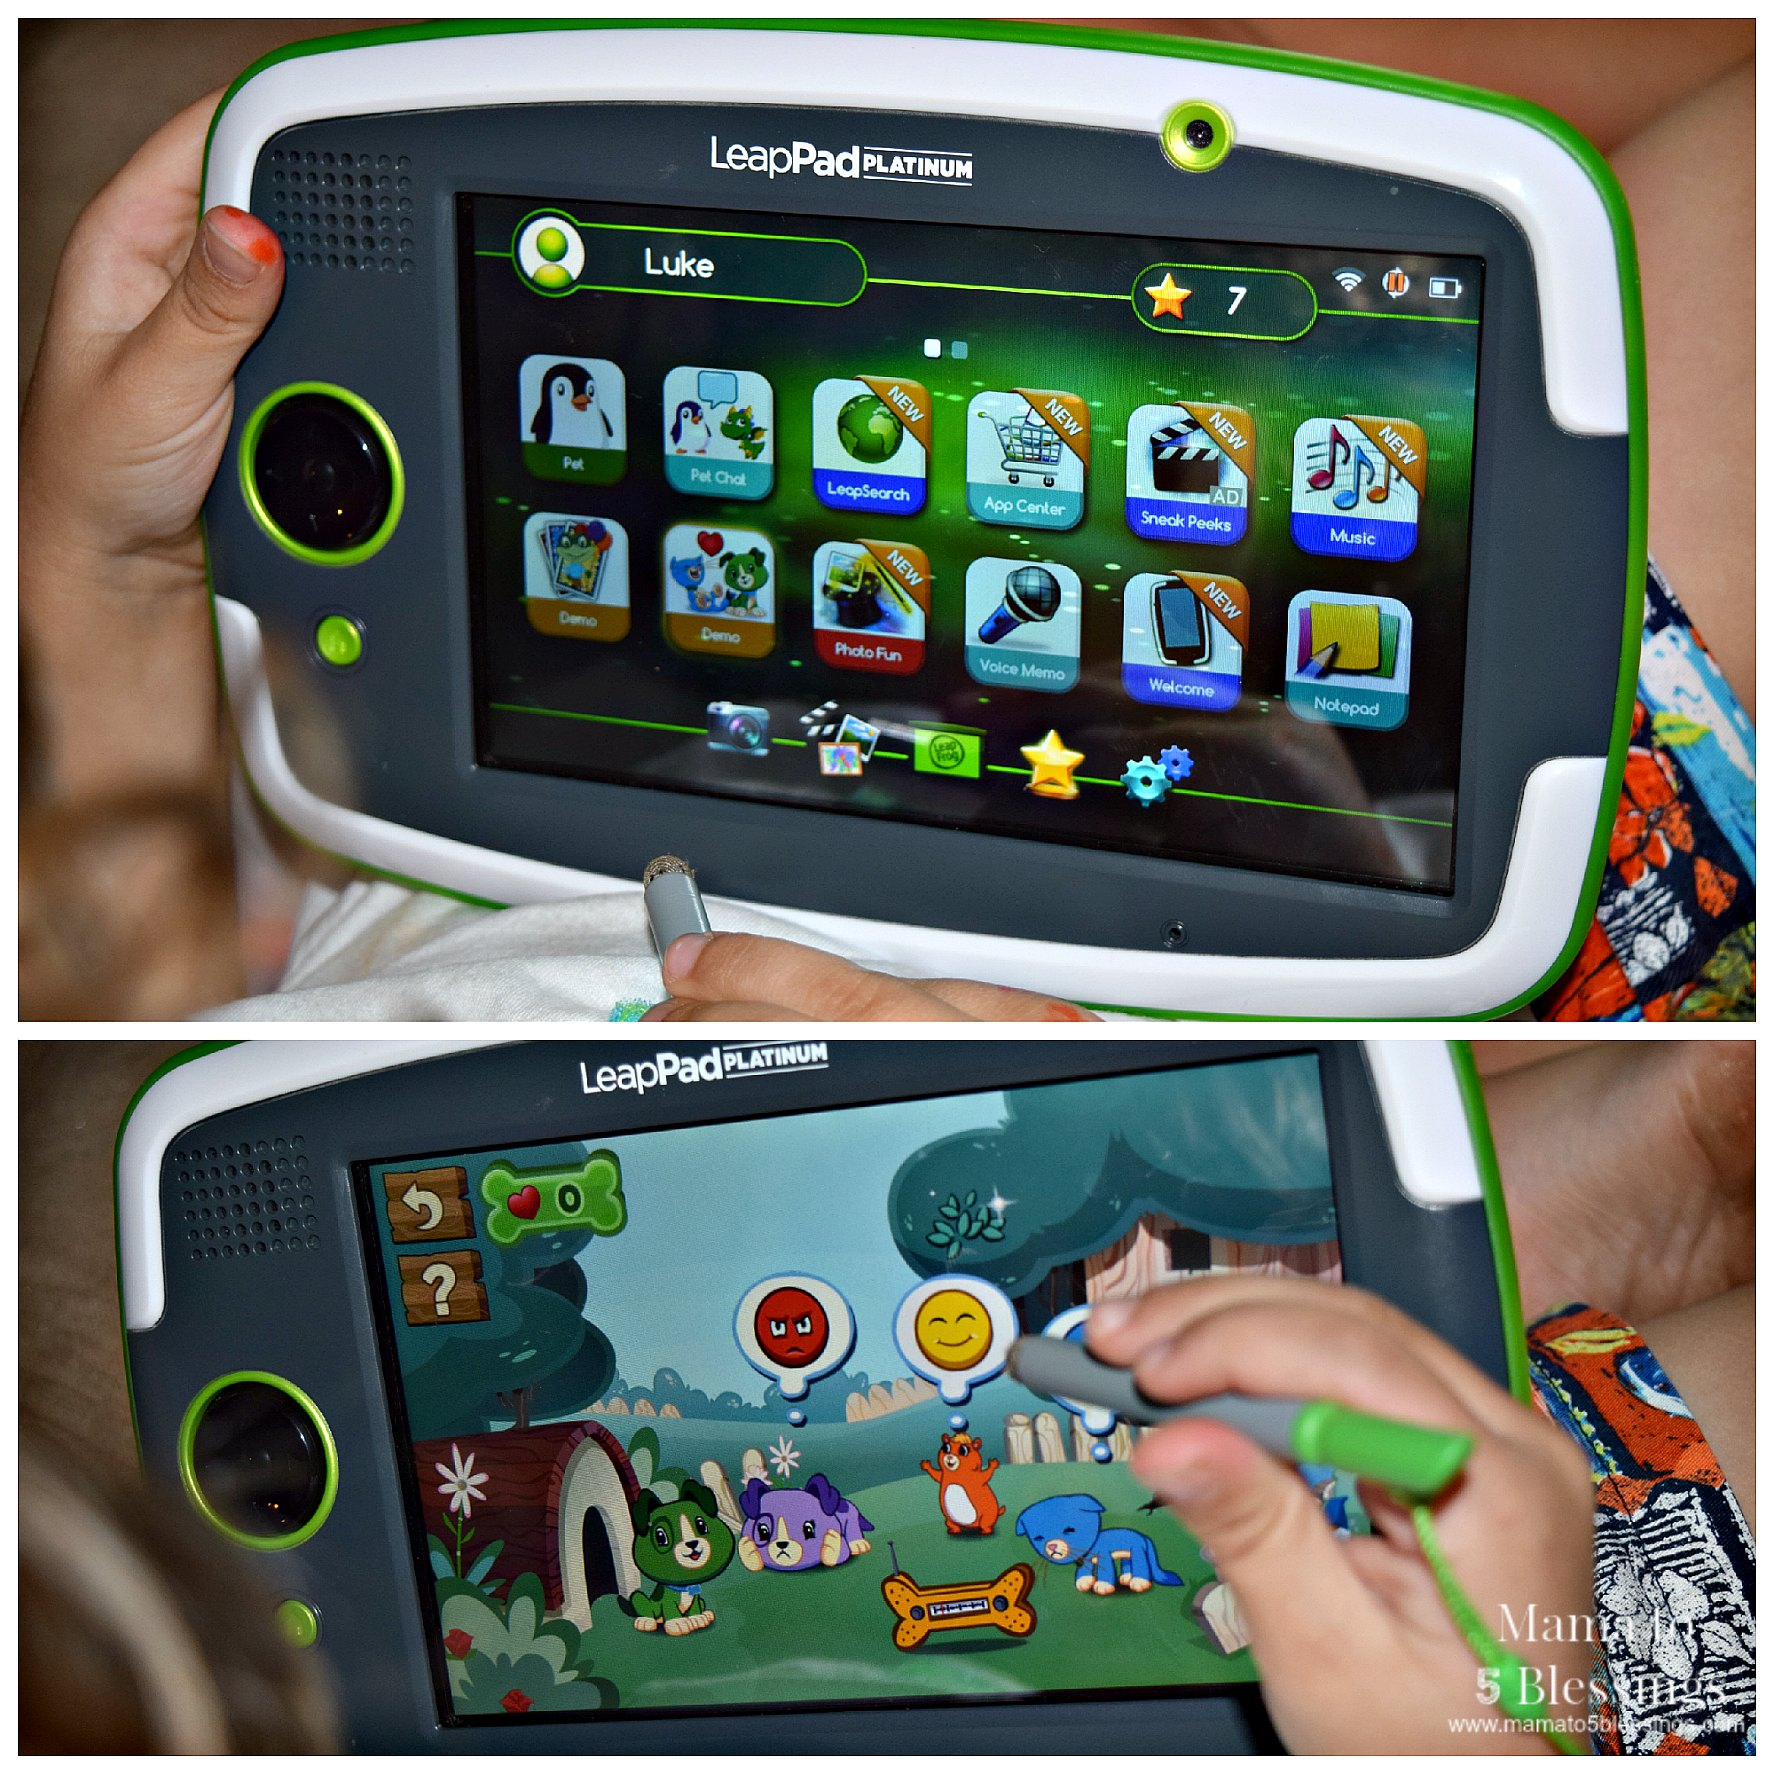 LeapPad Platinum Tablet